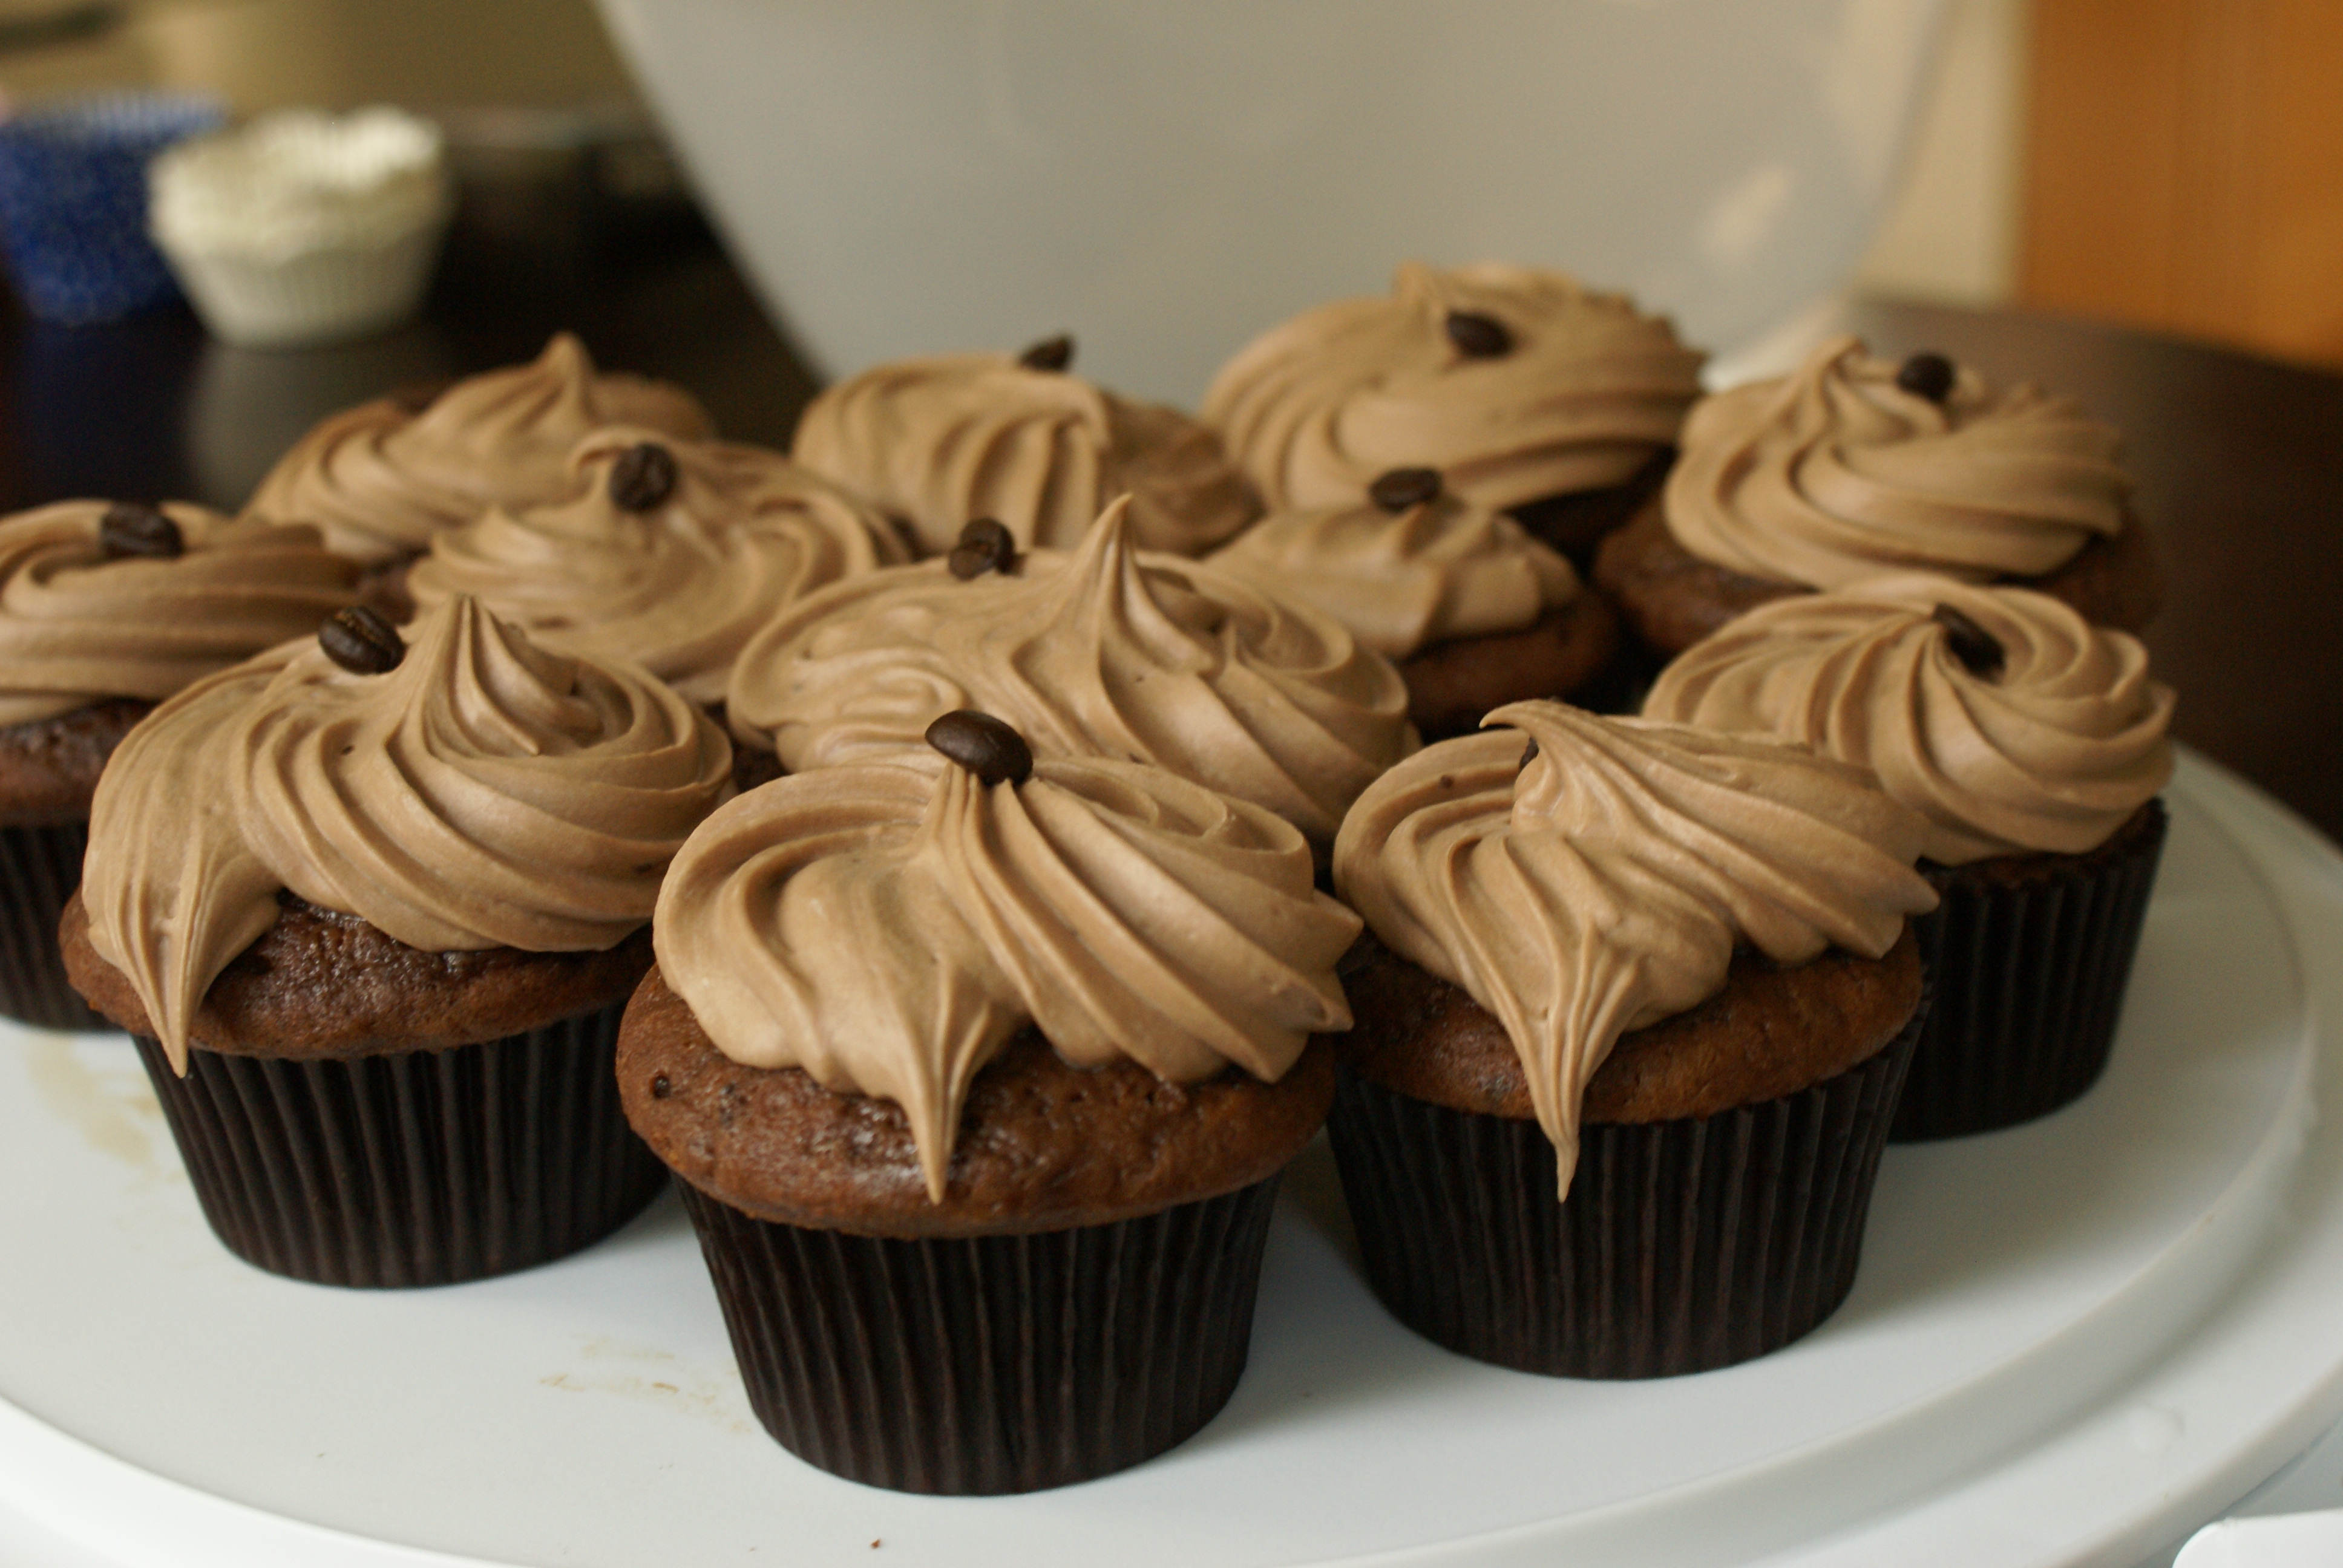 The Best Pick Me Up Coffee Drenched Cupcakes Hoping In God